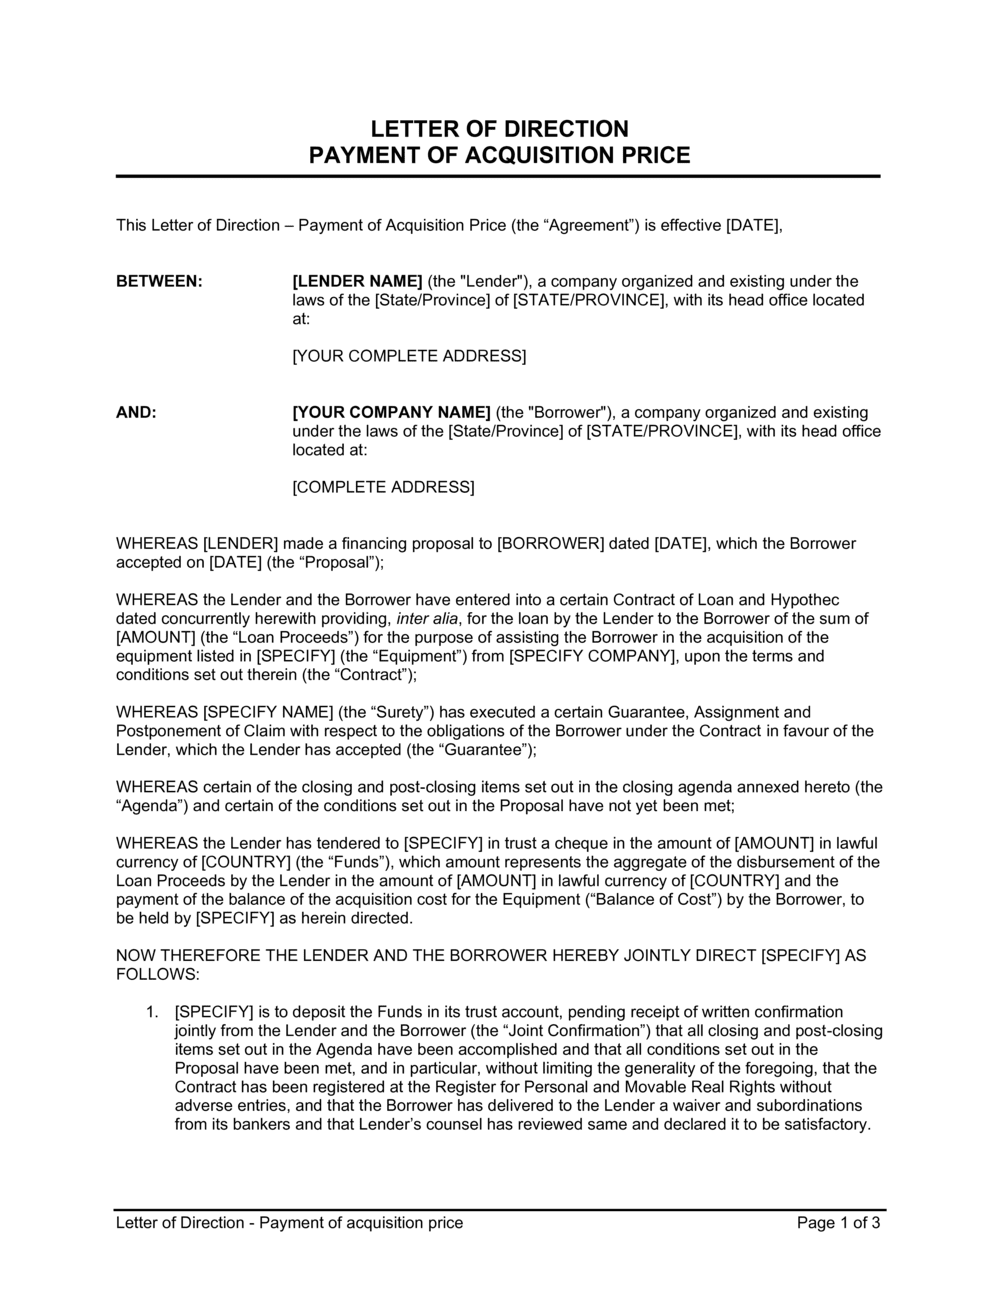 Business-in-a-Box's Letter of Direction Payment of Acquisition Price Template